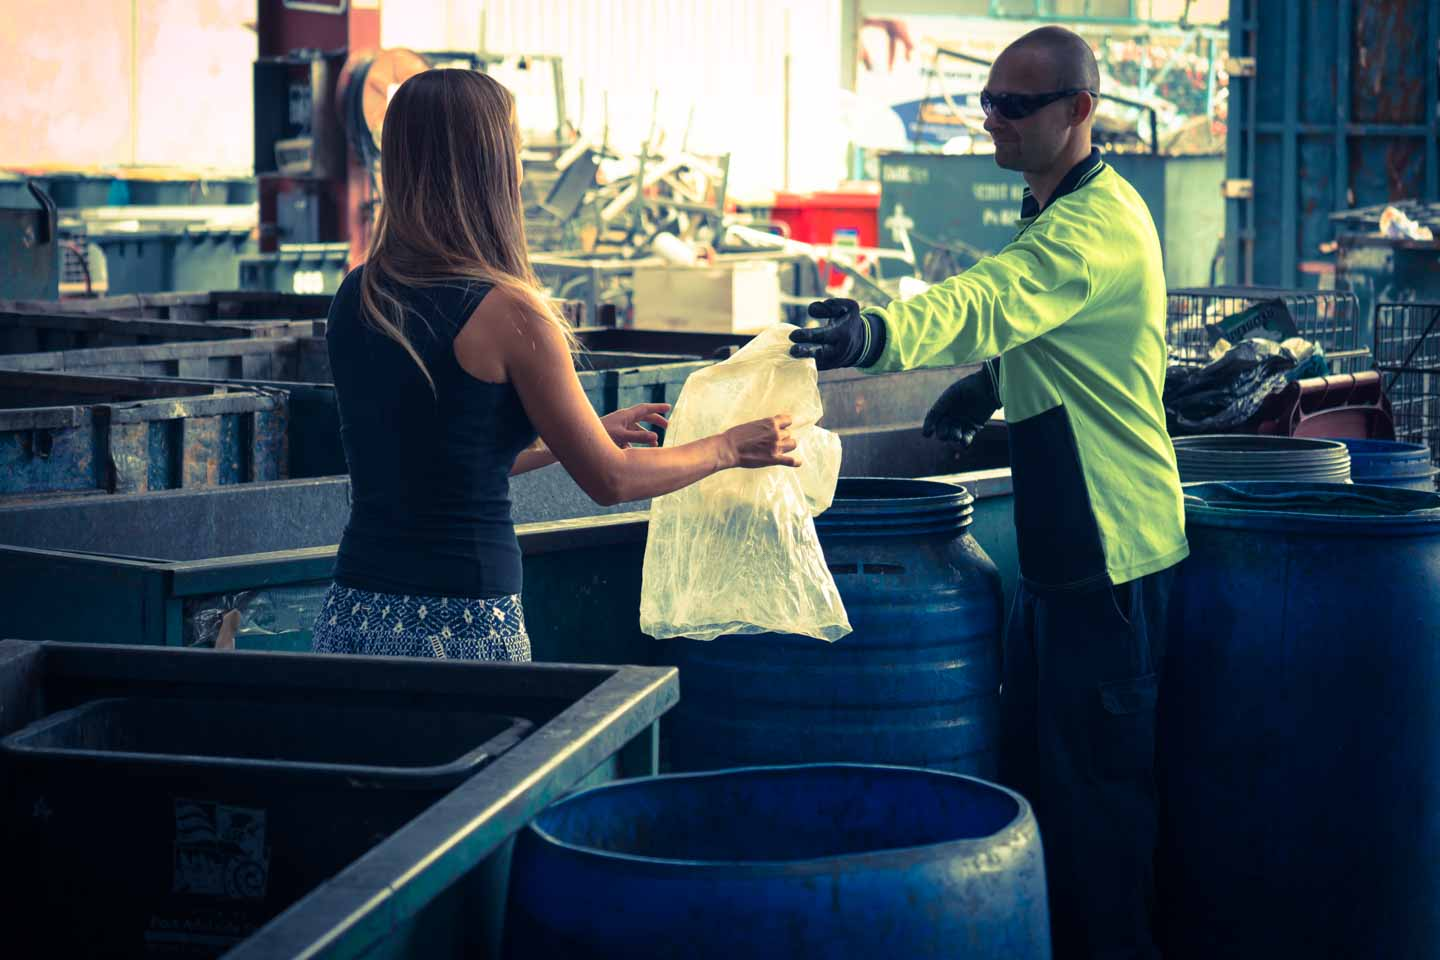 Anita Kisiala at a recycling station in Australia waste management